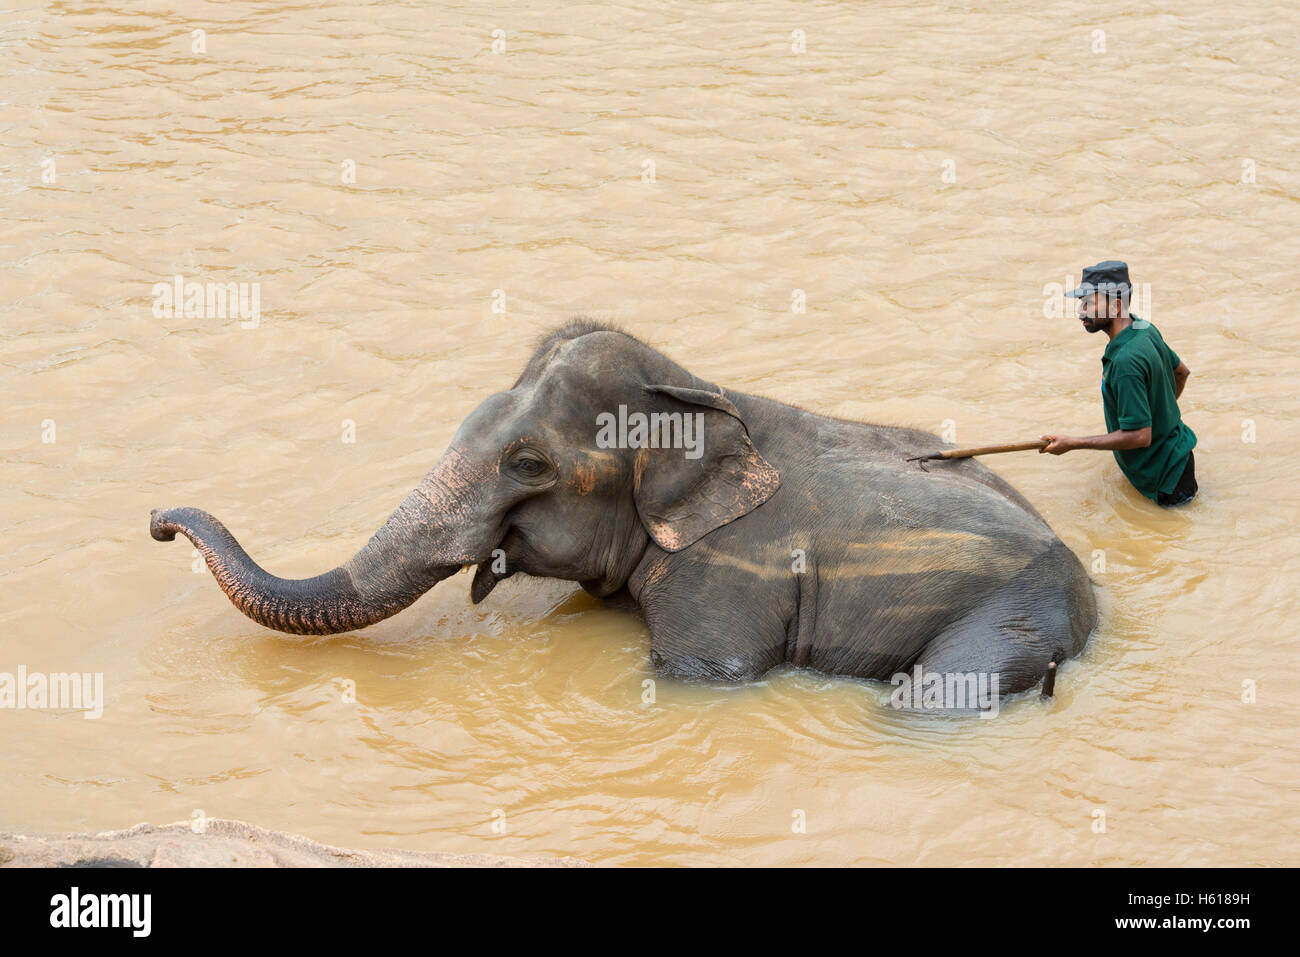 Handler washing Asian elephant in the river, Pinnawala Elephant Orphanage, Sri Lanka - Stock Image